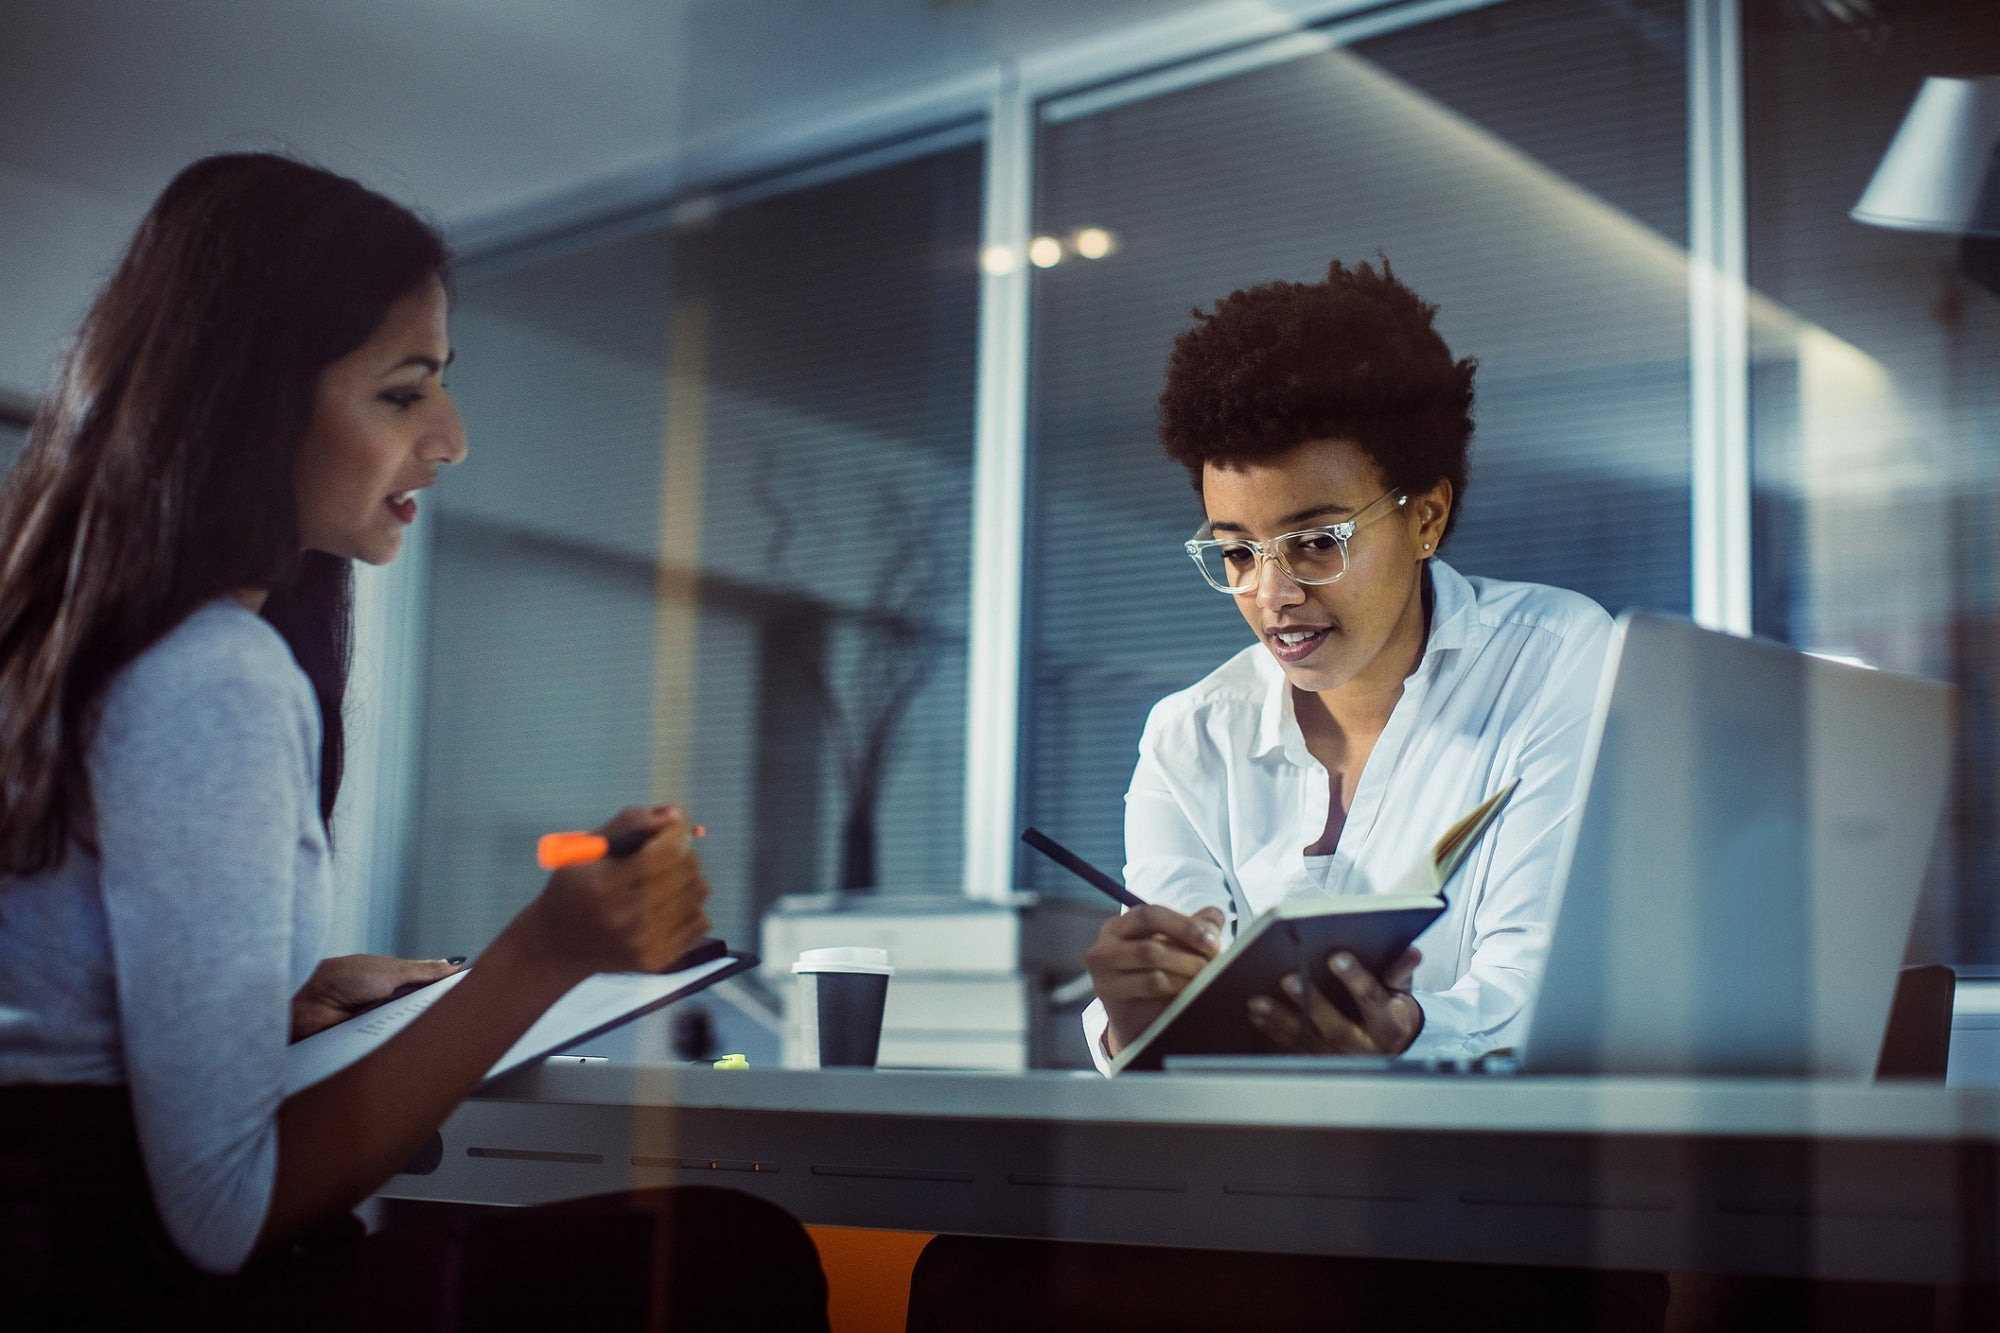 5 Human Resource Challenges Facing Small Businesses Today